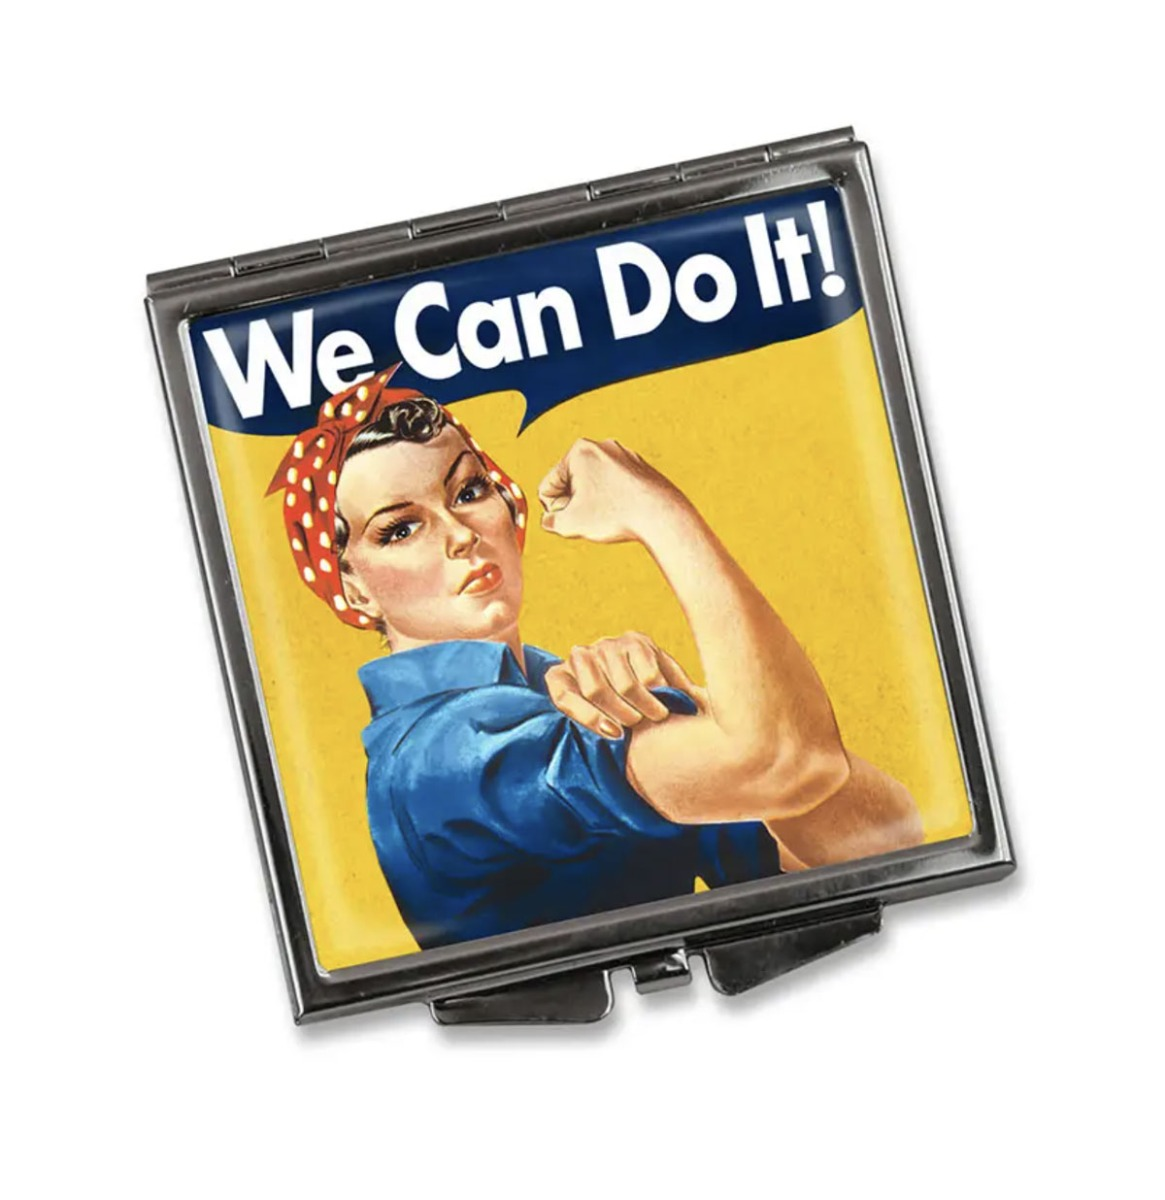 Vierkant Compact Spiegel - We Can Do It